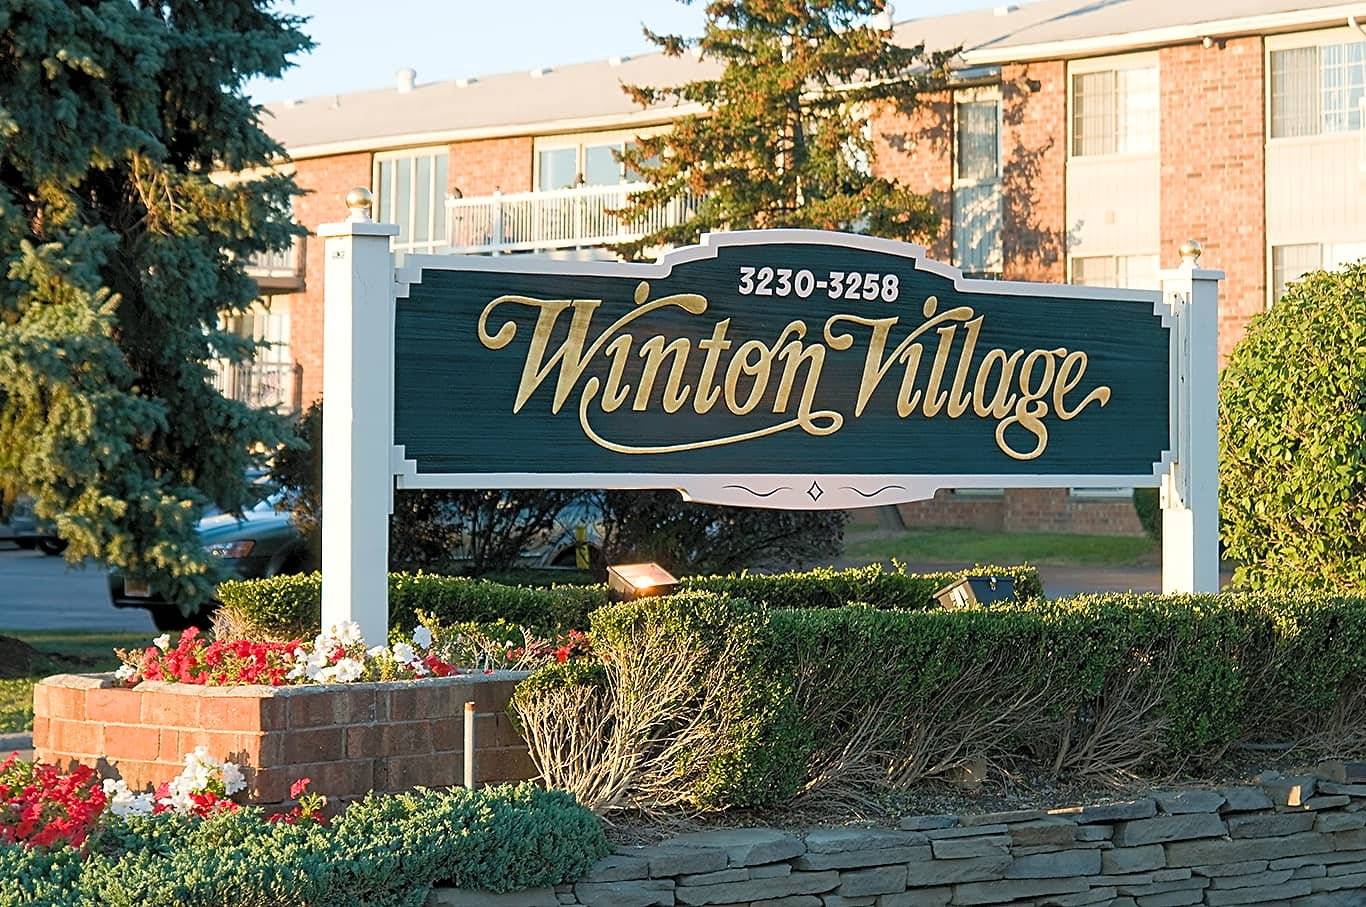 Apartments Near Fisher Winton Village Apartments for Saint John Fisher College Students in Rochester, NY